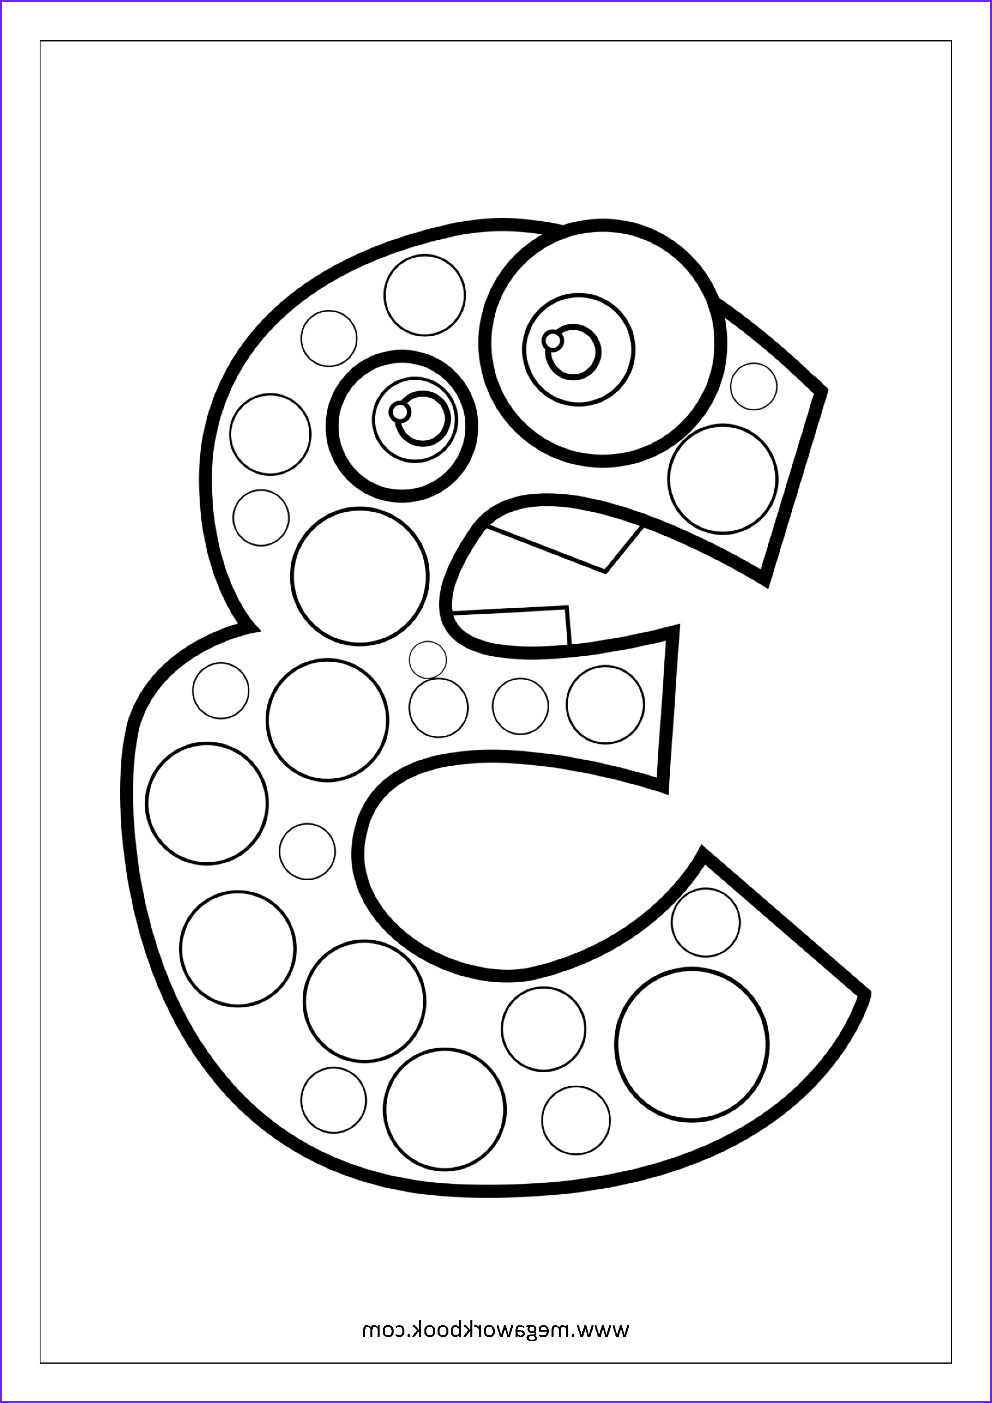 Number Coloring Luxury Gallery Free Coloring Sheets Miscellaneous Megaworkbook